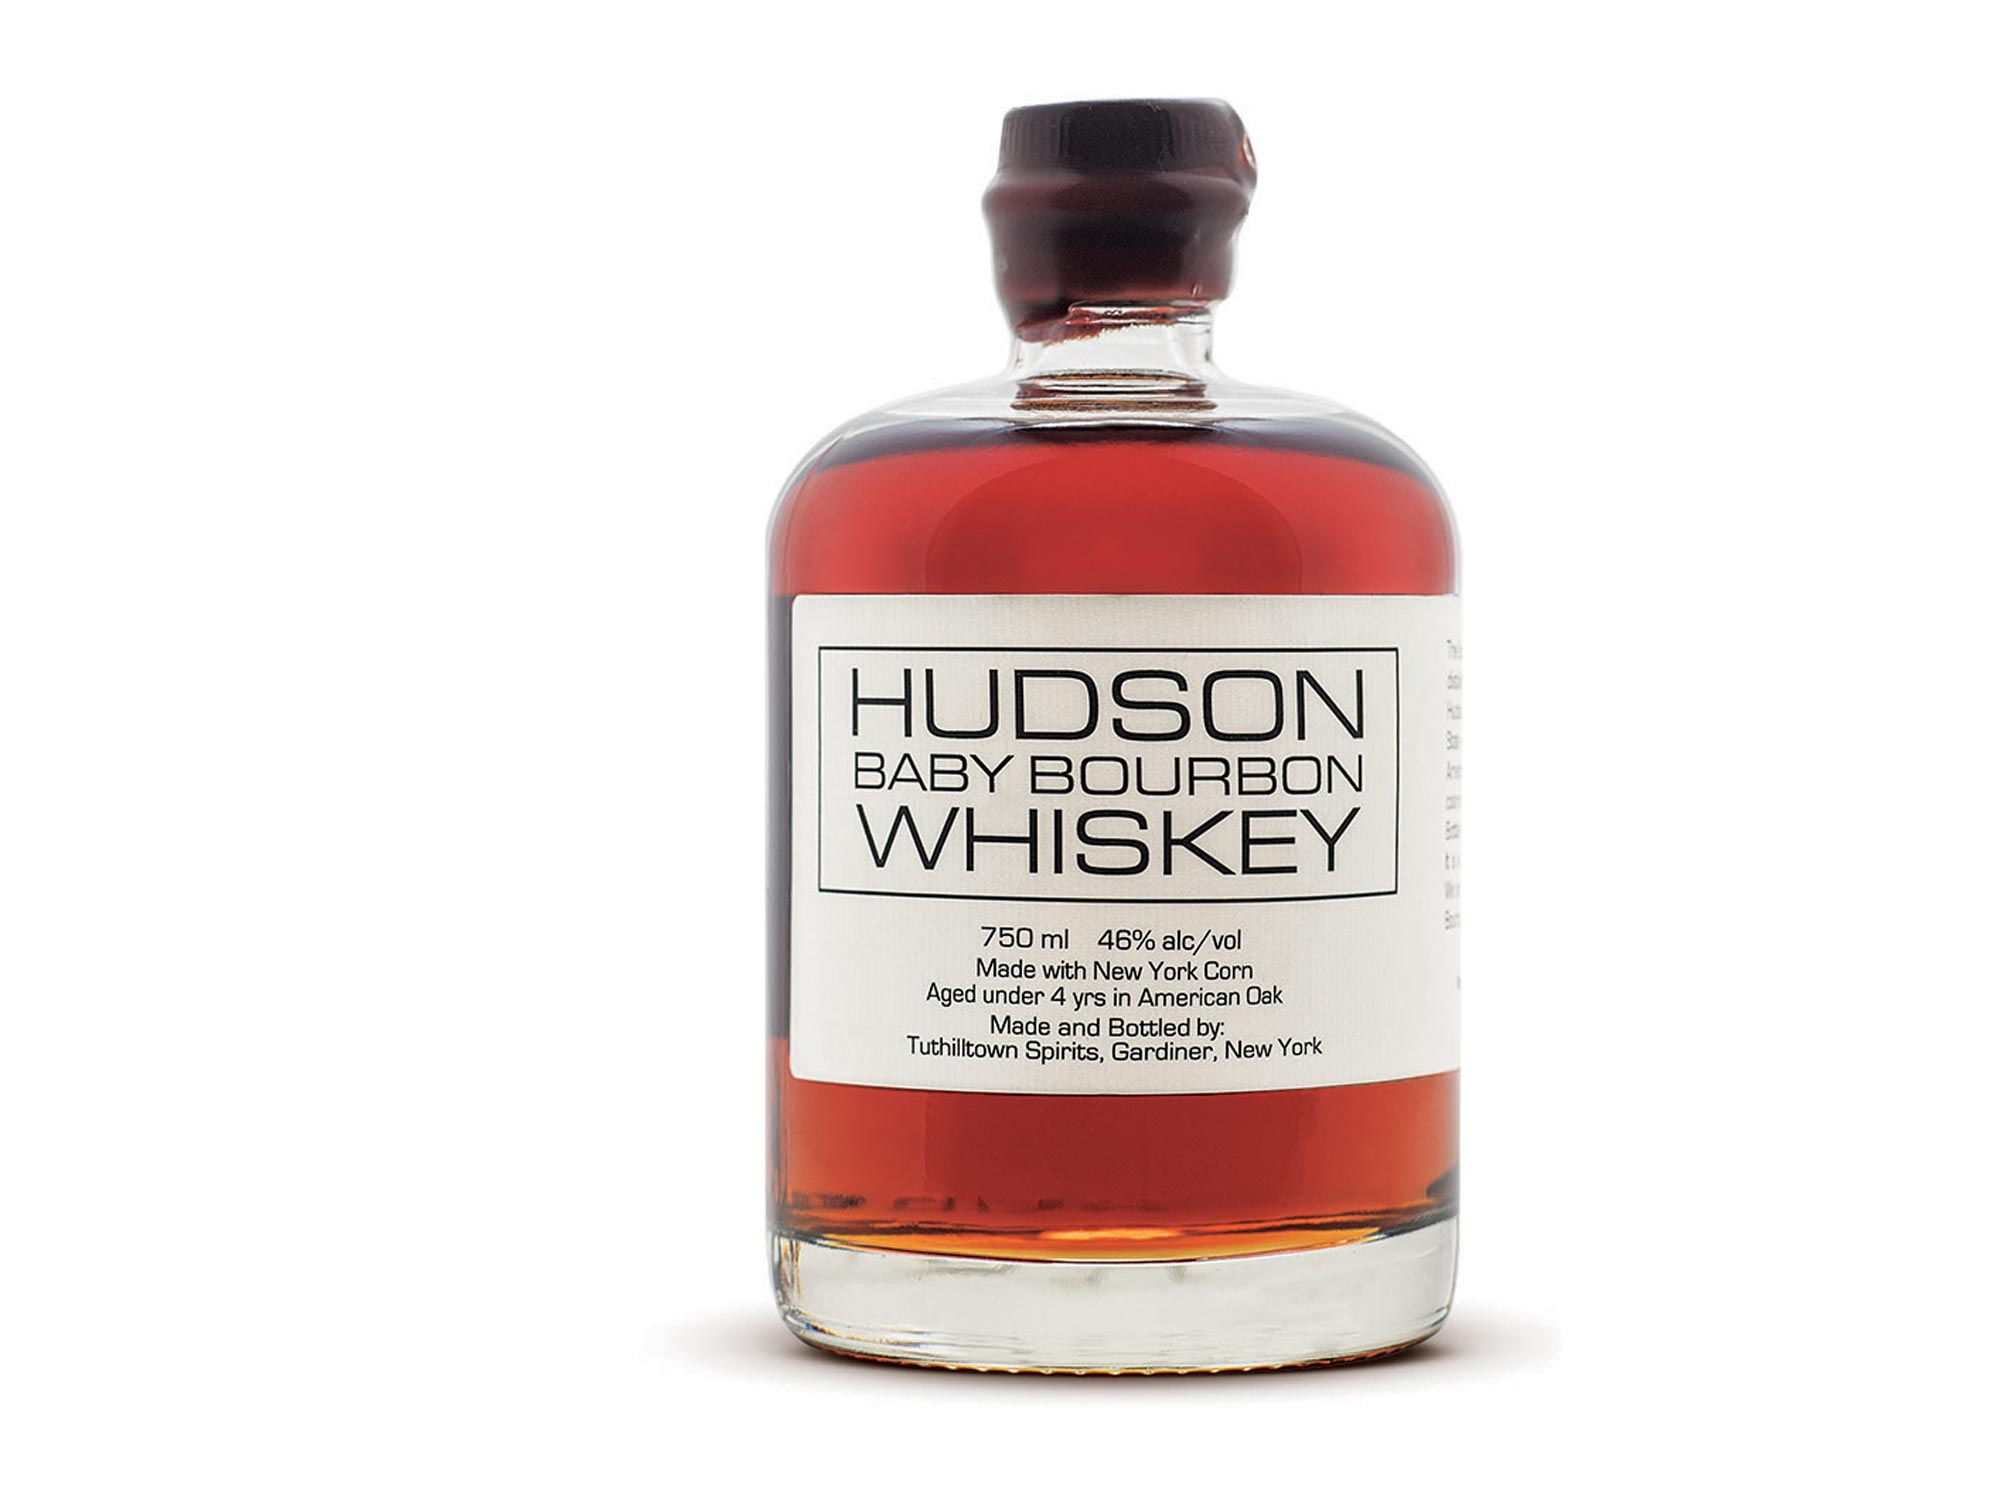 Hudson's Baby Bourbon Whiskey hits all the right notes. Smooth with a touch of sweetness and hints of vanilla and caramel, make sure your loved ones have a bottle of this to reach for during the cold winter months.